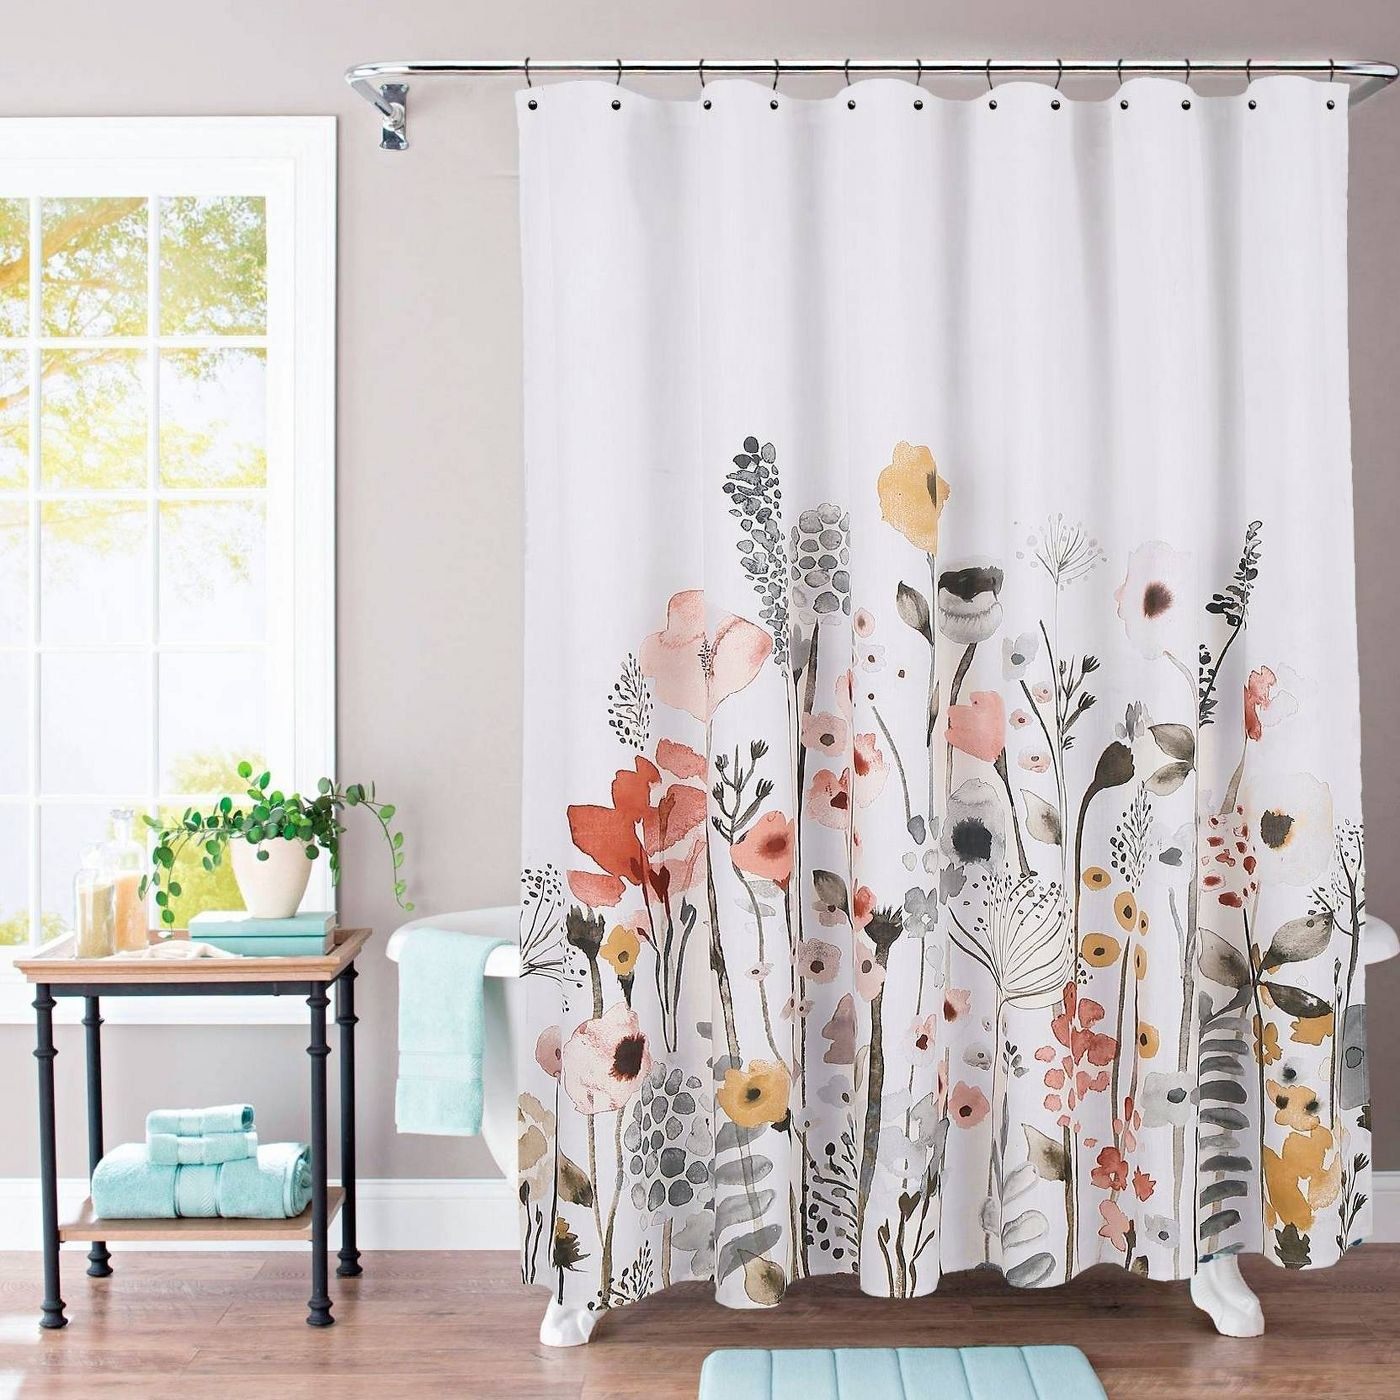 The floral white shower curtain